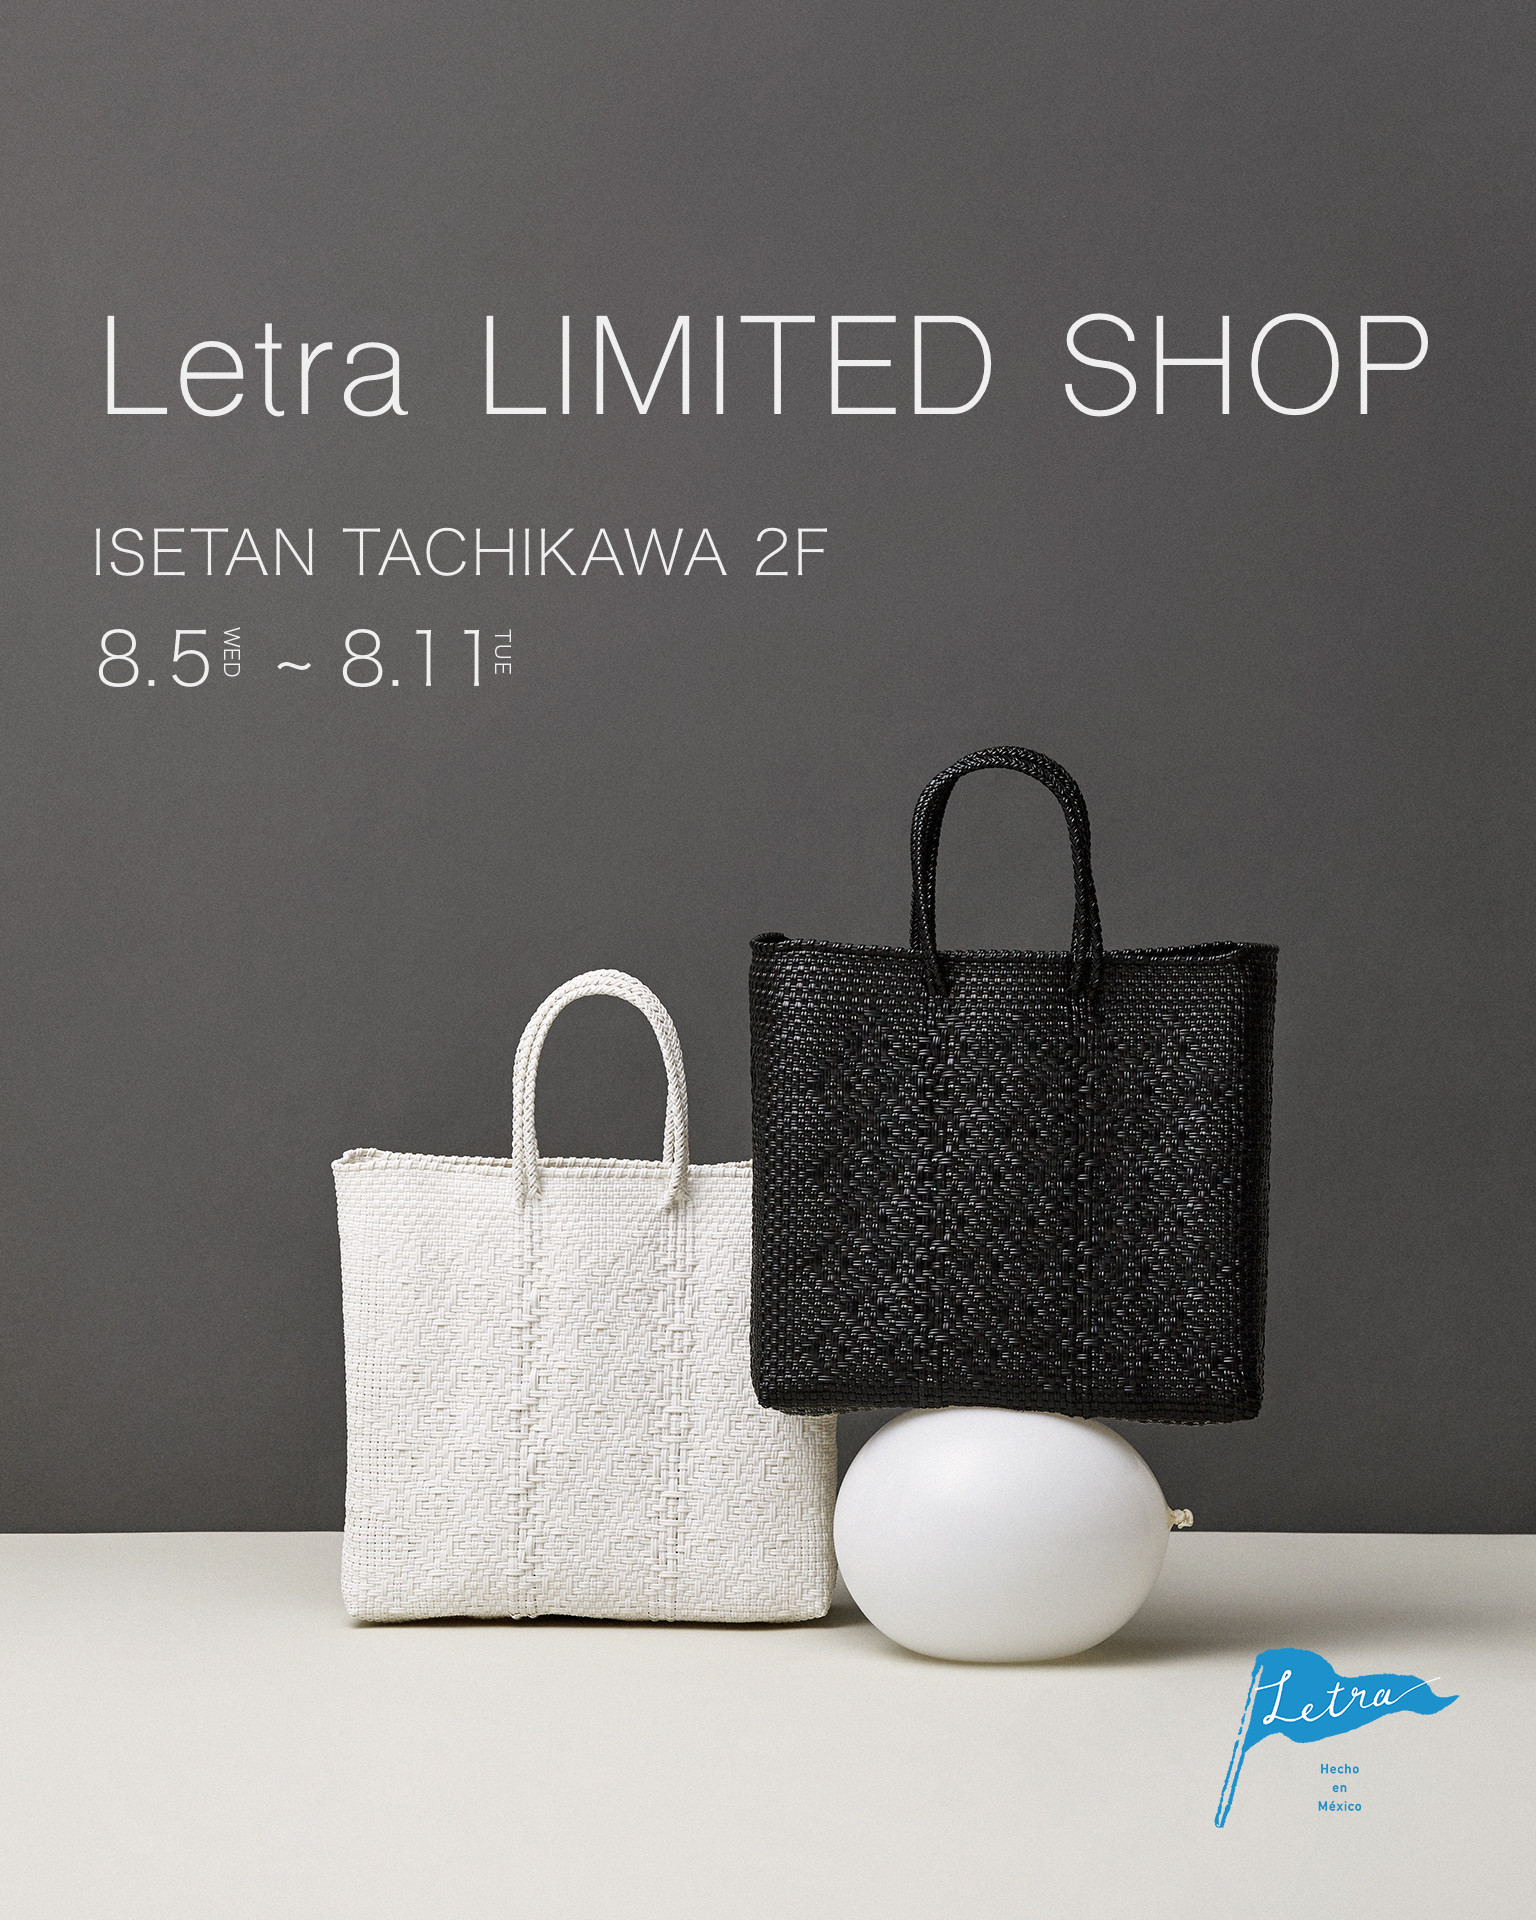 Letra Limited Shop 伊勢丹立川 OPEN!